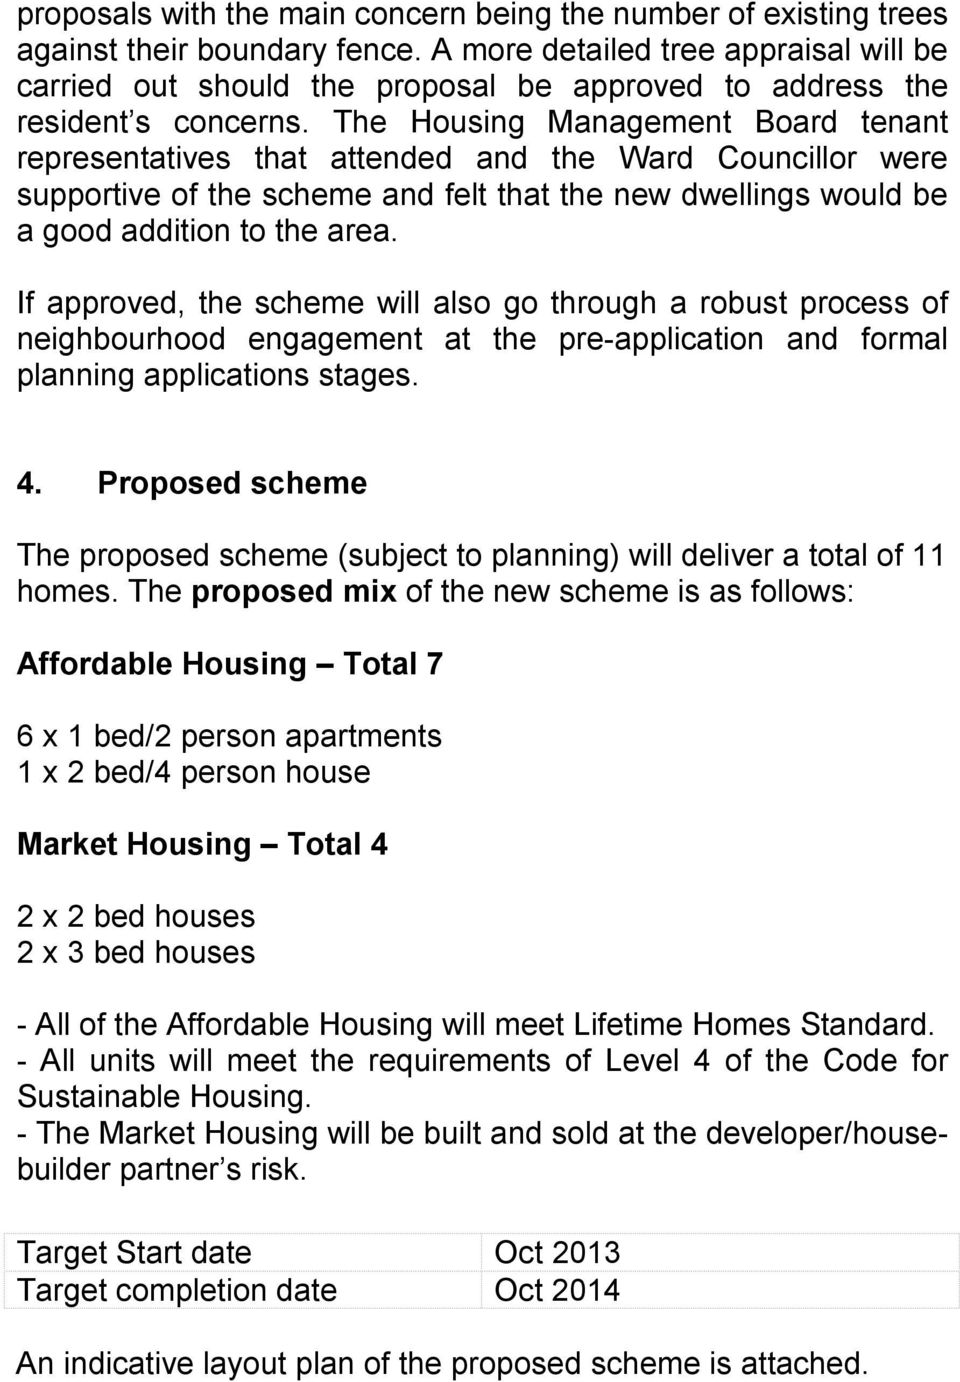 The Housing Management Board tenant representatives that attended and the Ward Councillor were supportive of the scheme and felt that the new dwellings would be a good addition to the area.